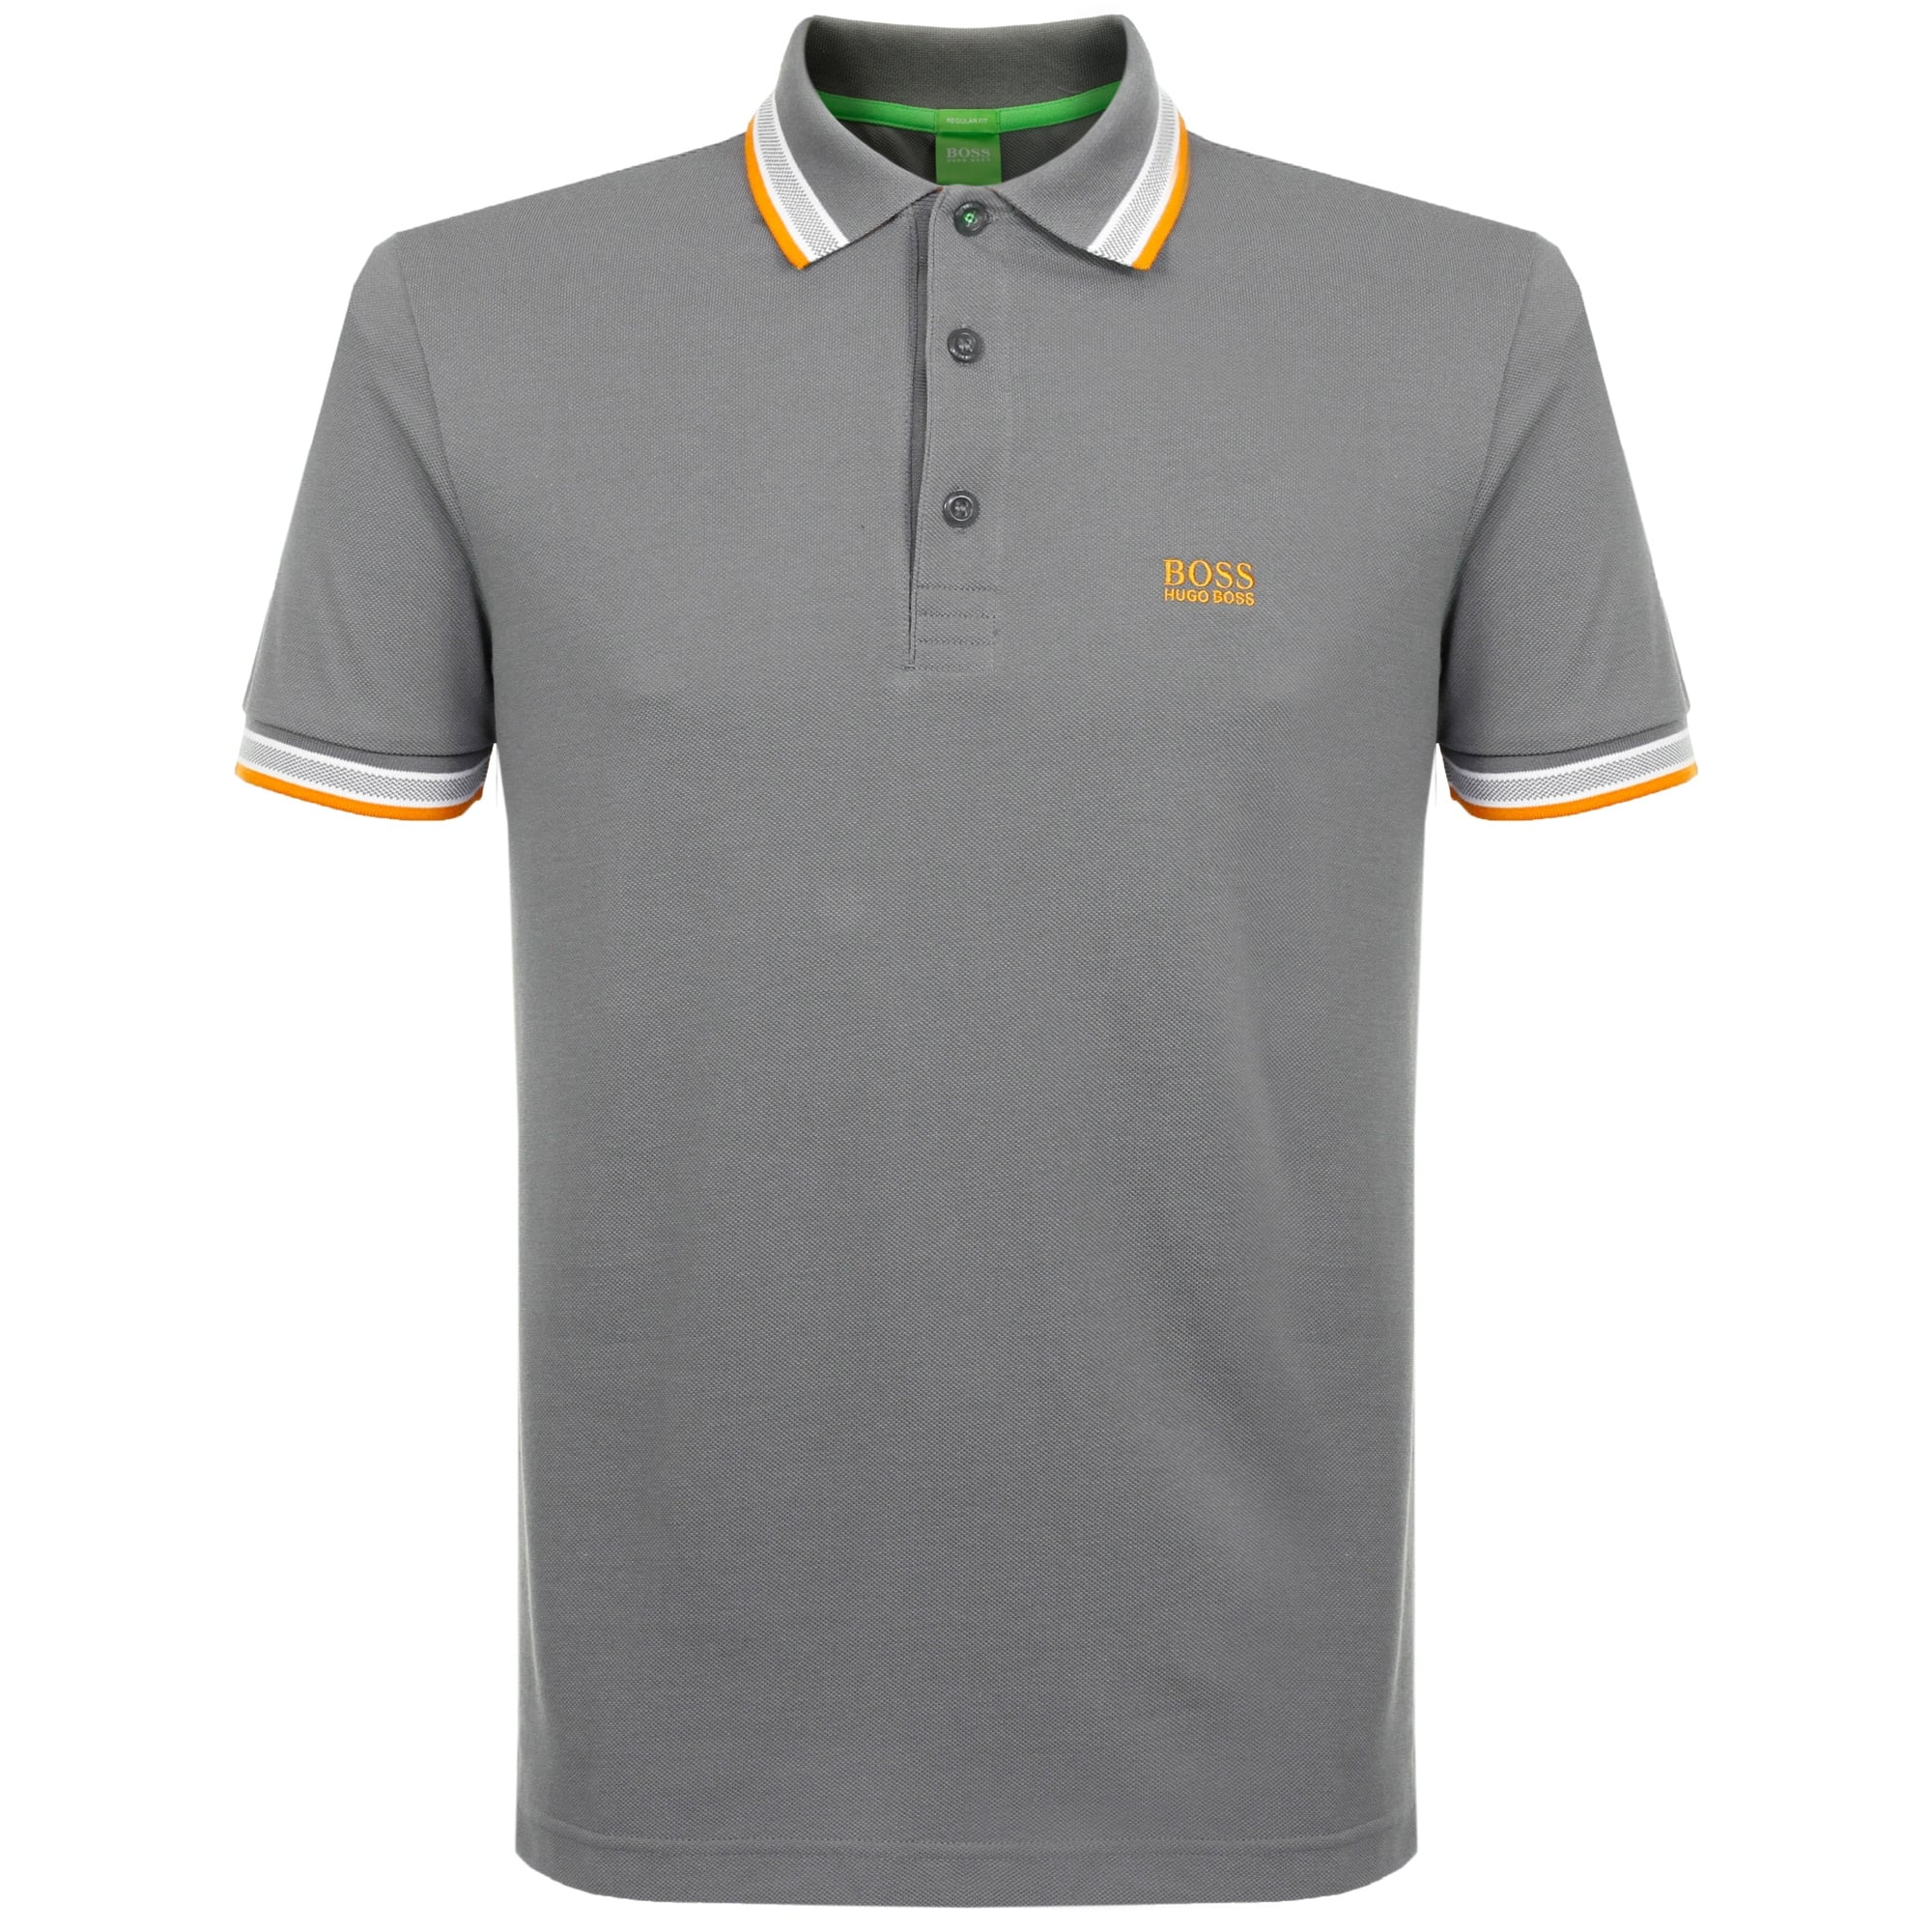 Hugo Boss Green Medium Grey Polo Shirt 50302557 f36ca6180